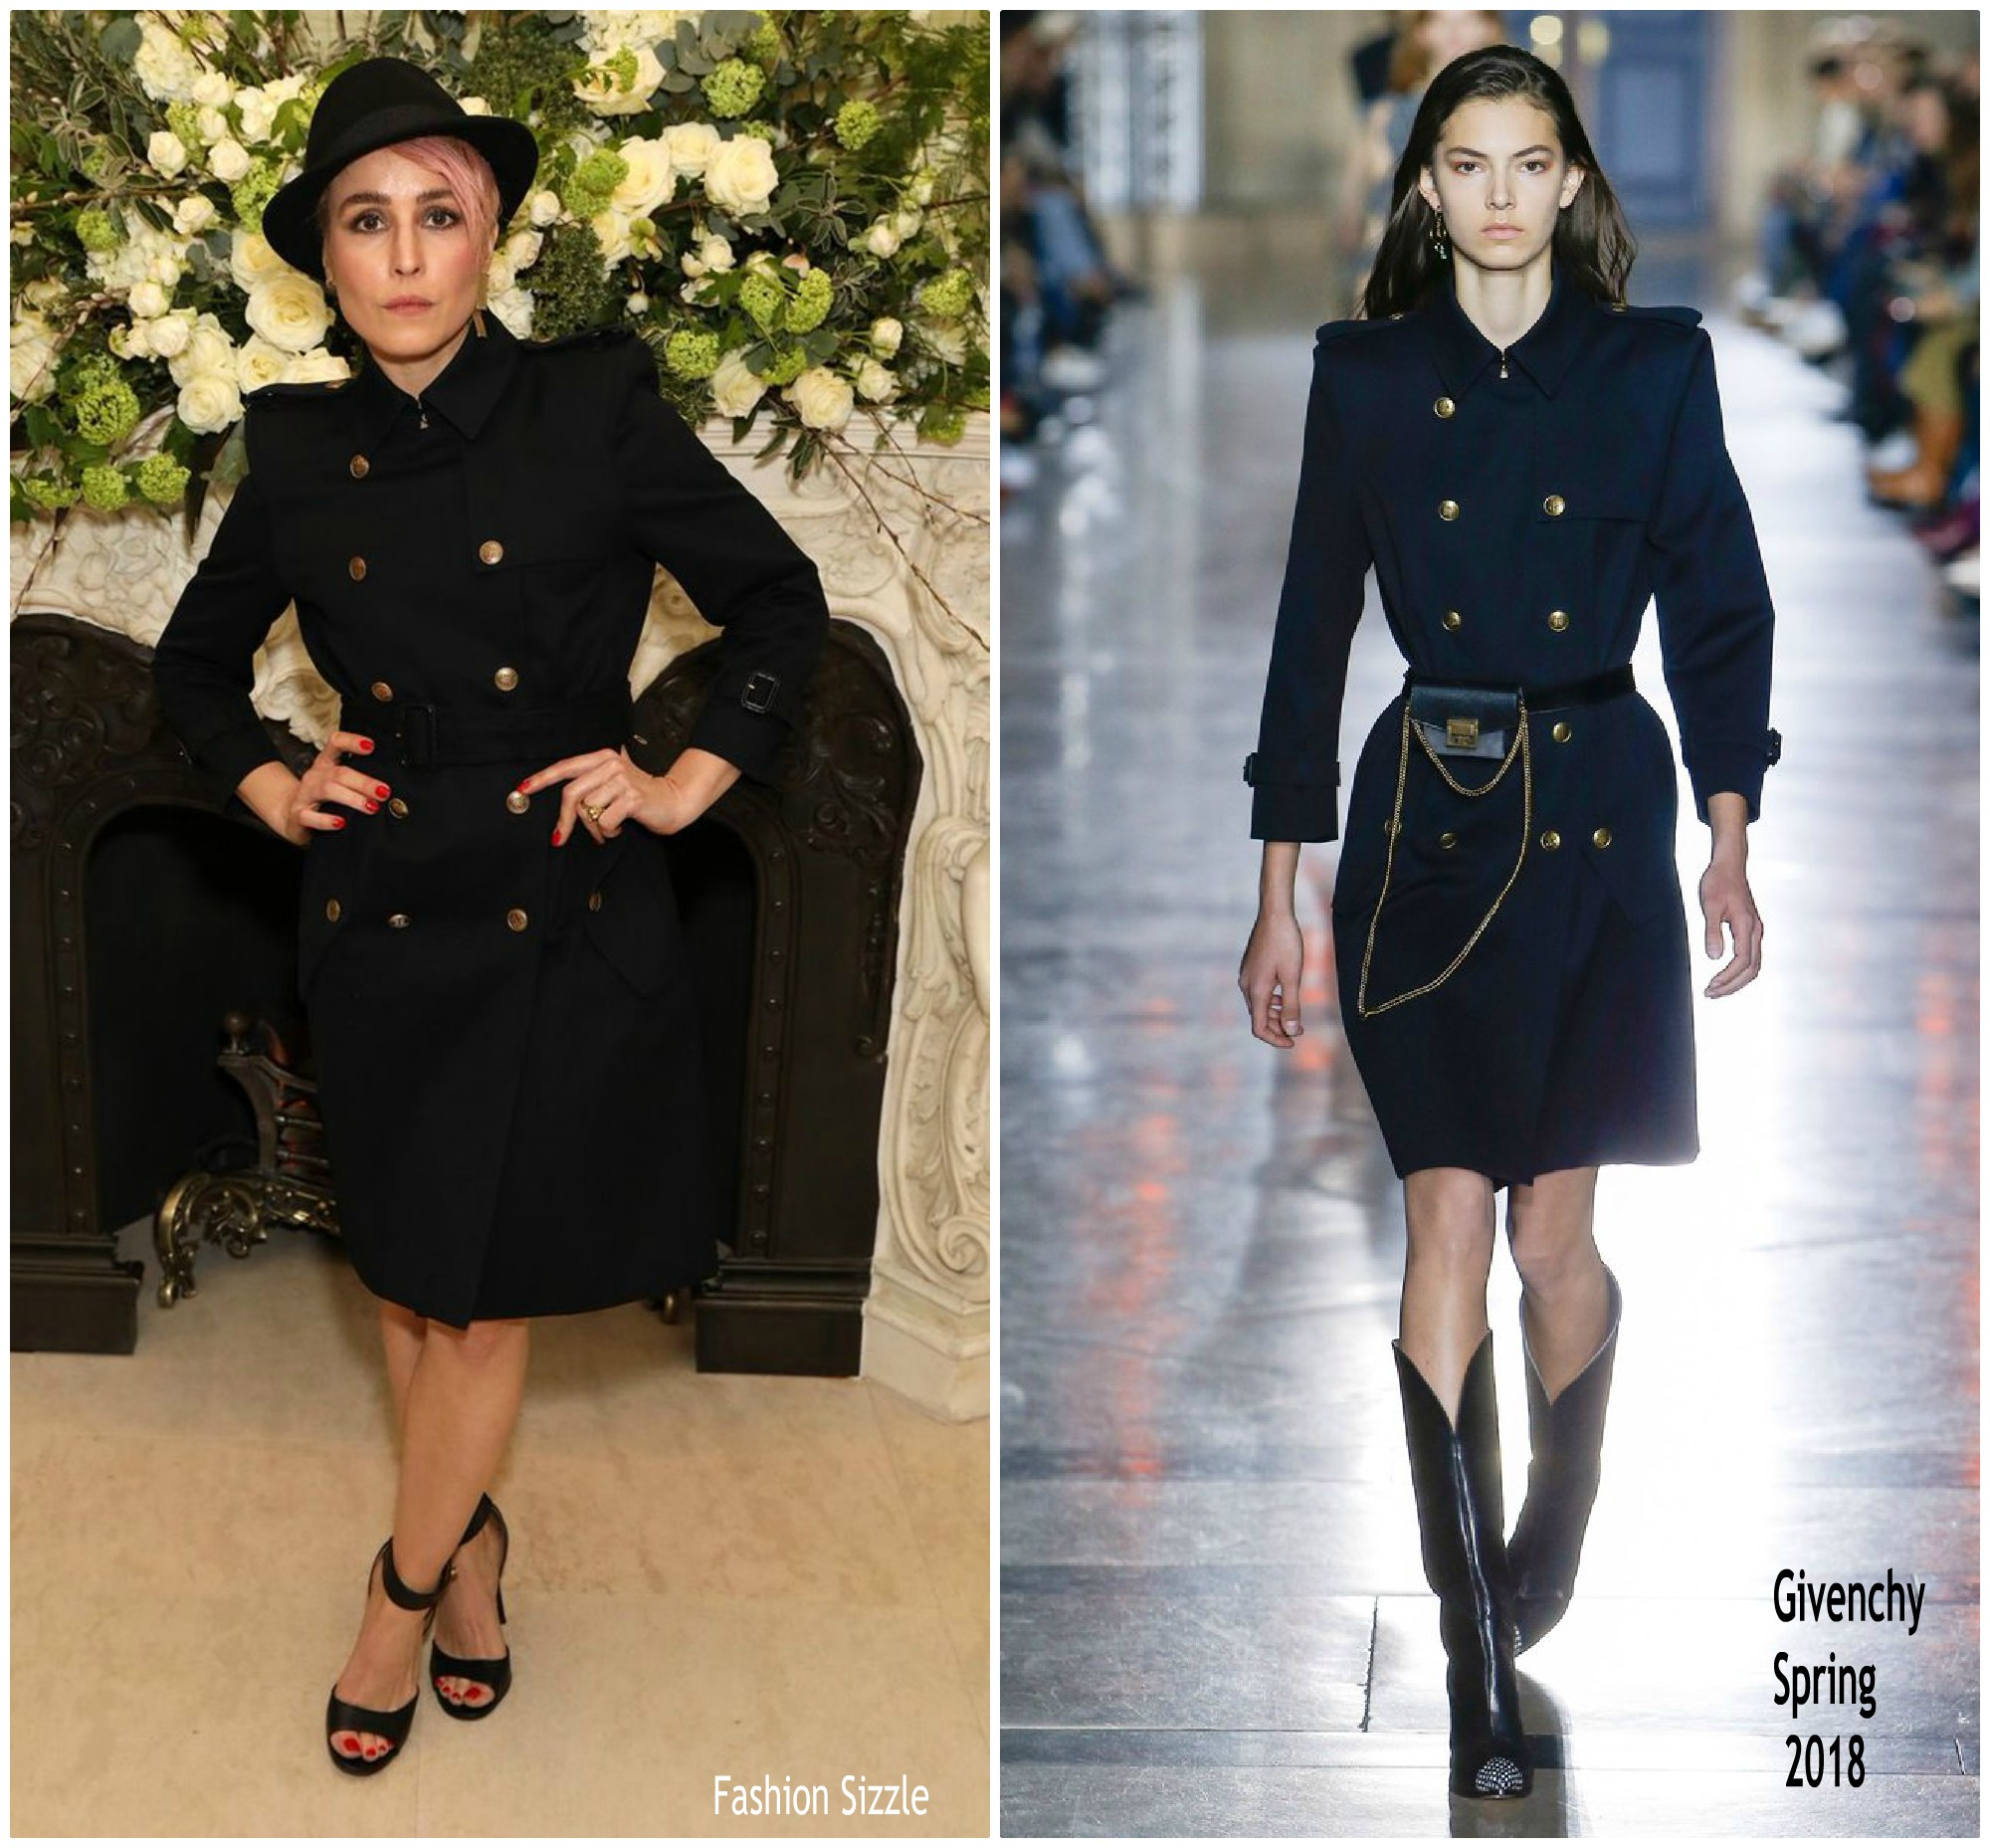 noomi-rapace-in-givencgy-british-vogue-fashion-film-party-2018